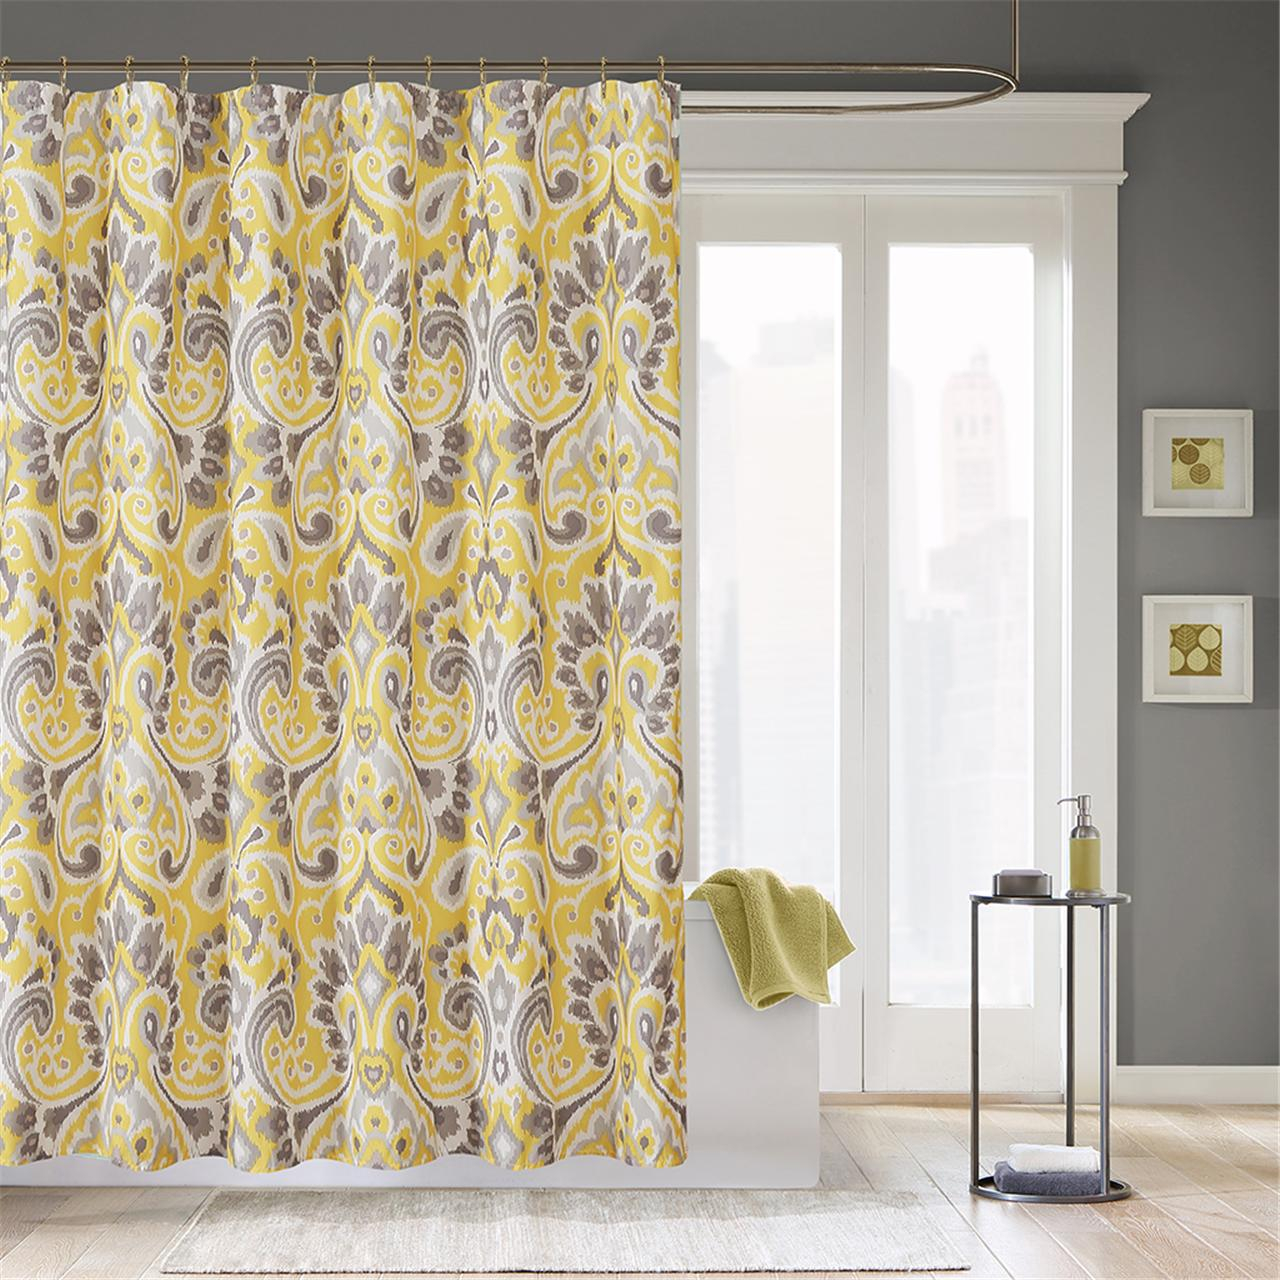 Yellow And White Bedroom Curtains: Yellow Patterned Shower Curtains